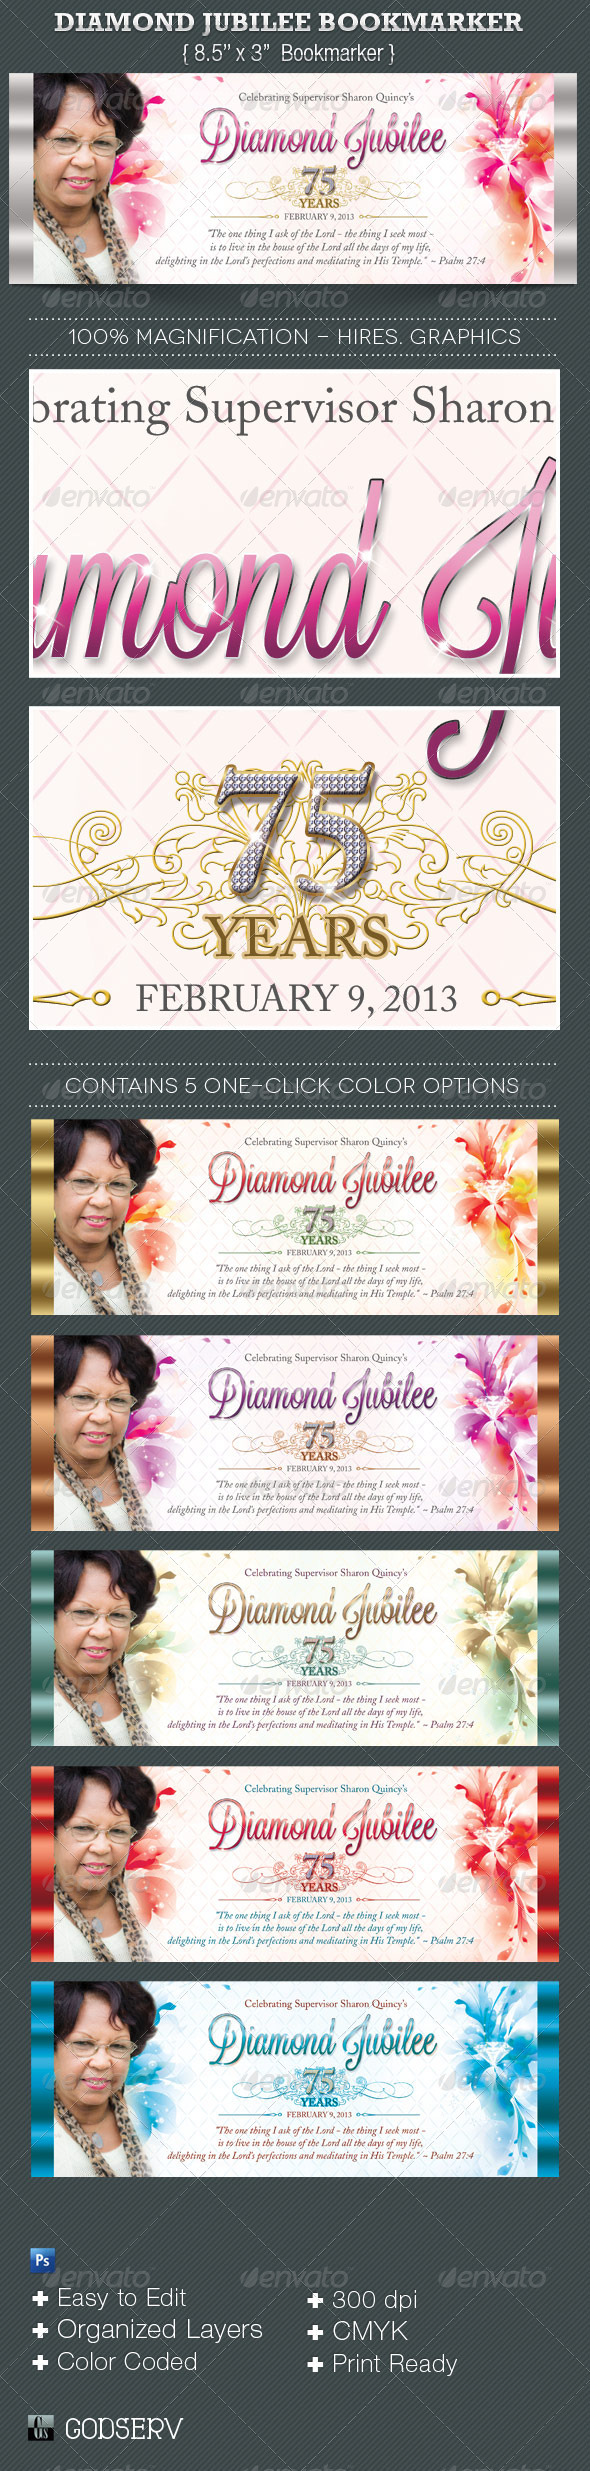 Diamond Jubilee Bookmarker Template - Miscellaneous Print Templates